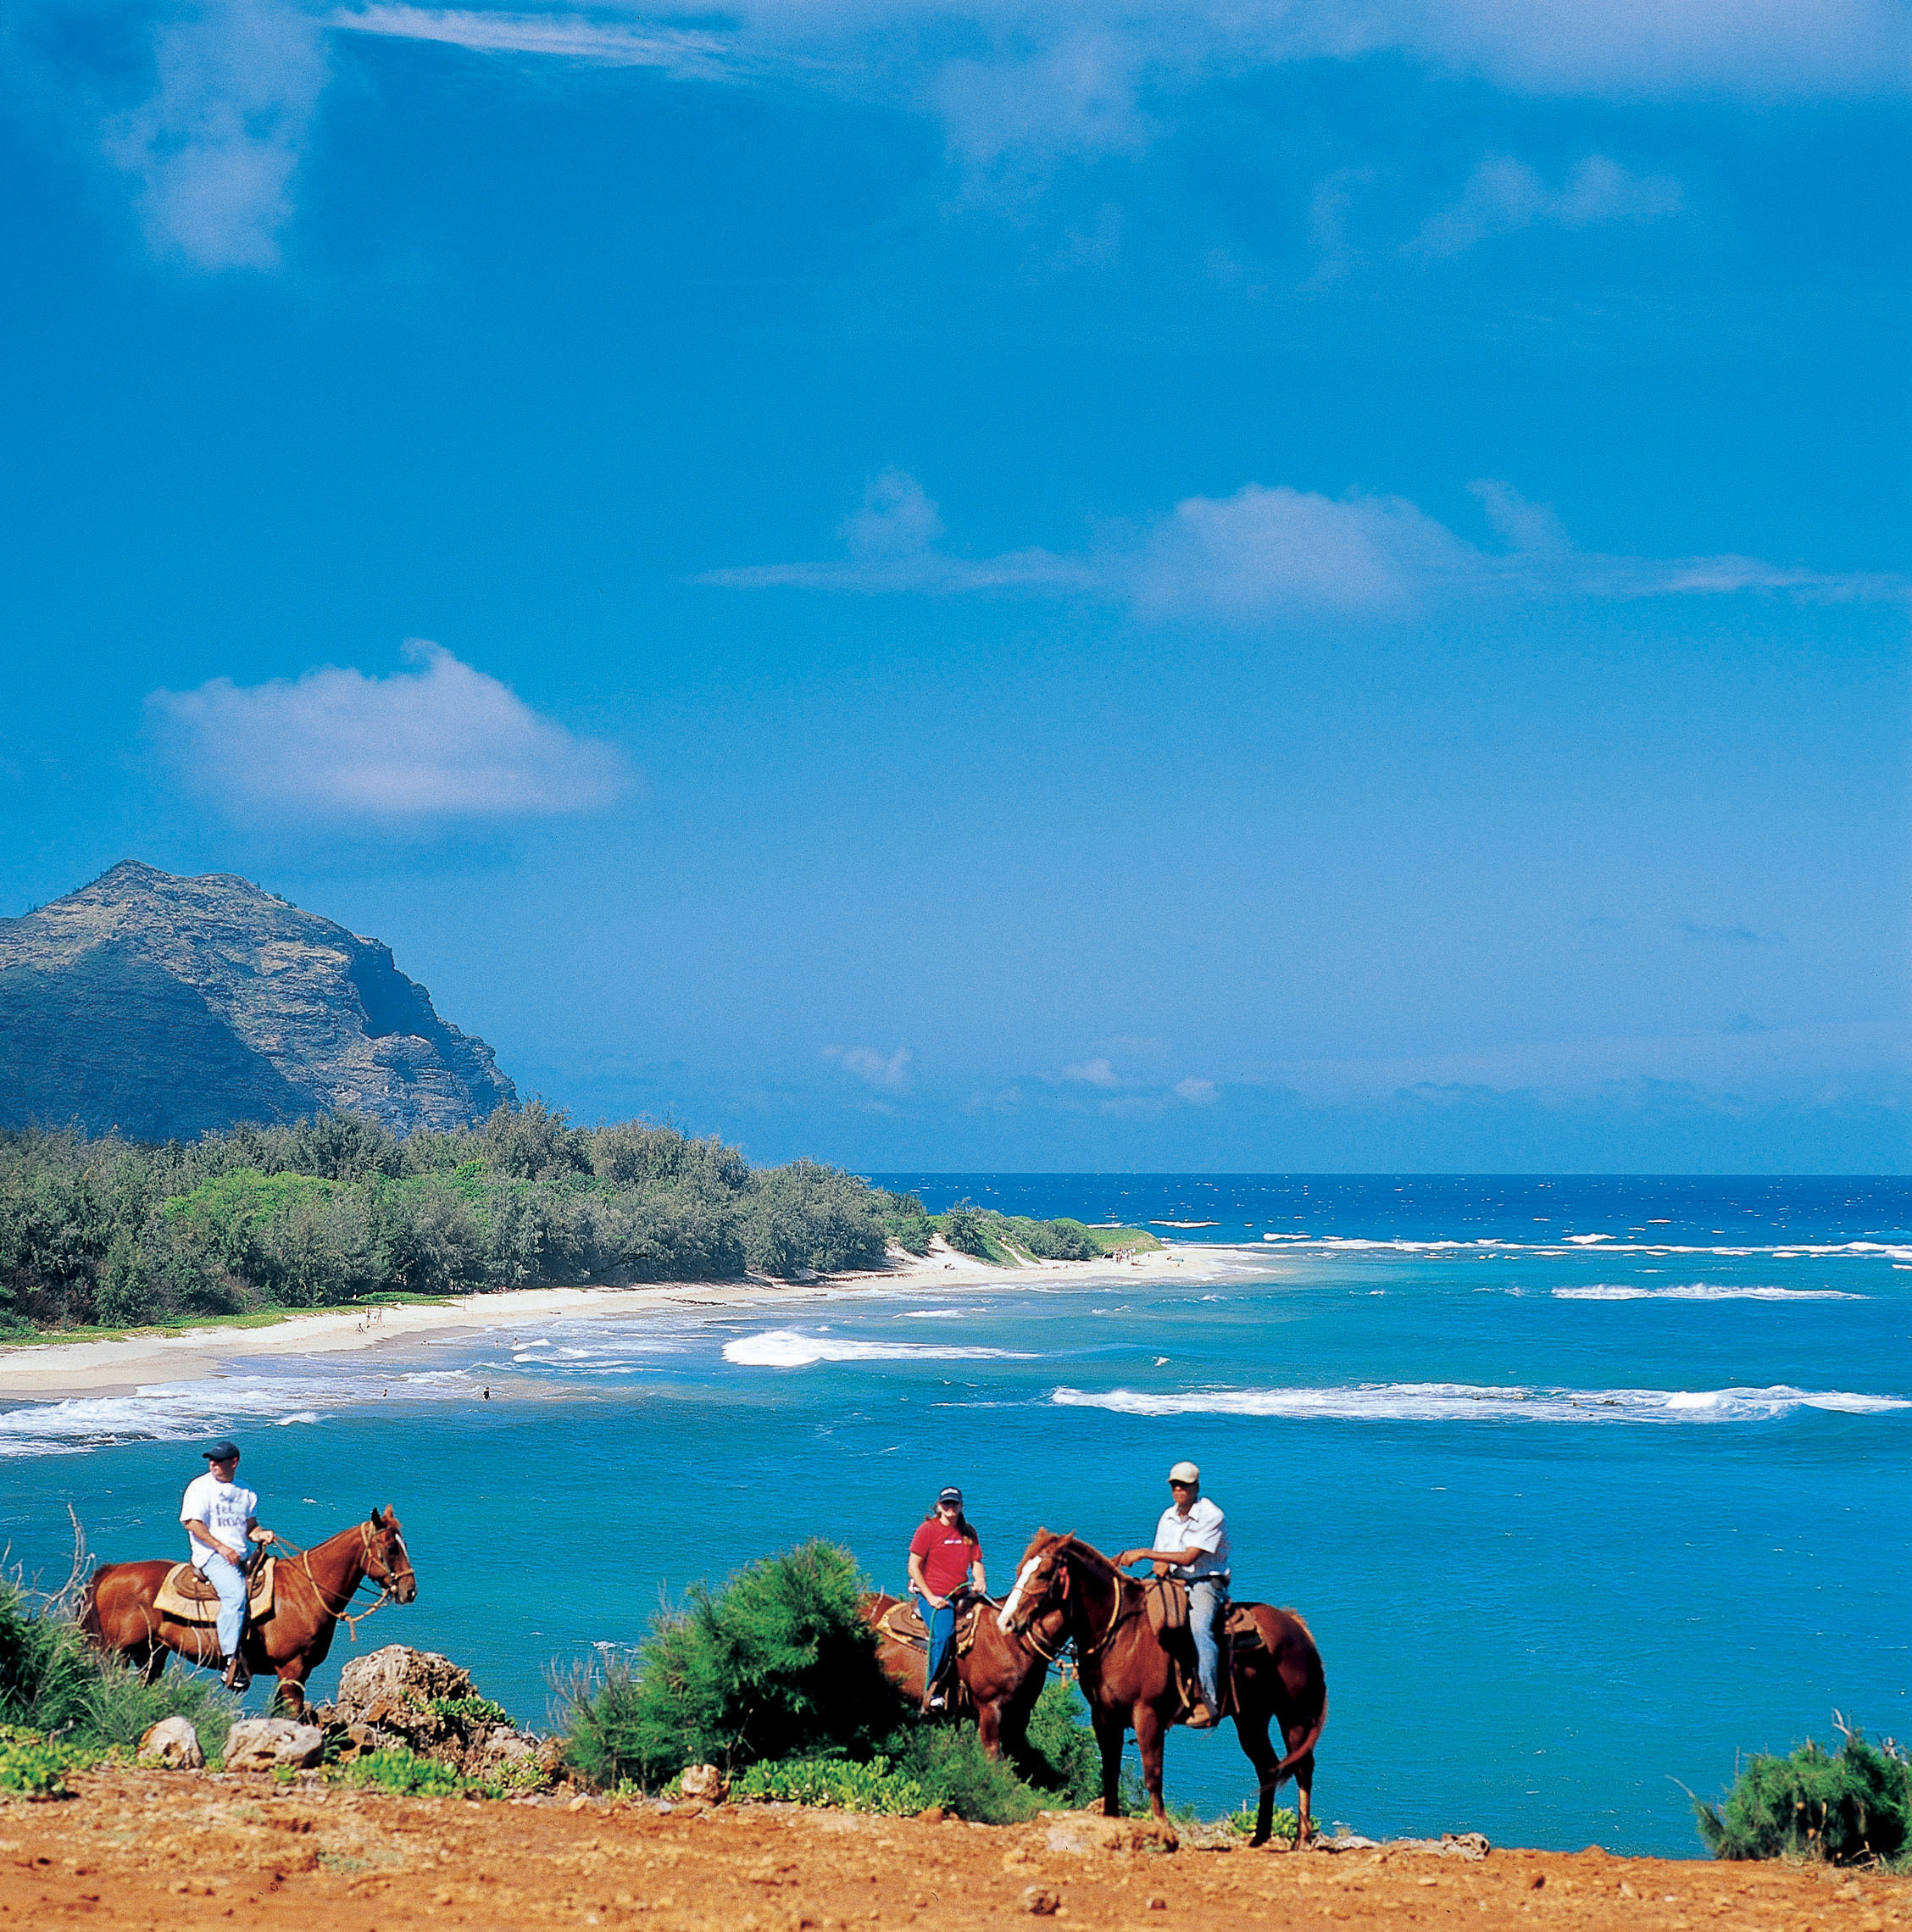 Honeymoon, Destinations, blue, Honeymoons, Cruise, Dinner, Tours, Flight, Helicopter, Luau, Riding, Travel to maui, Excursions, Horseback